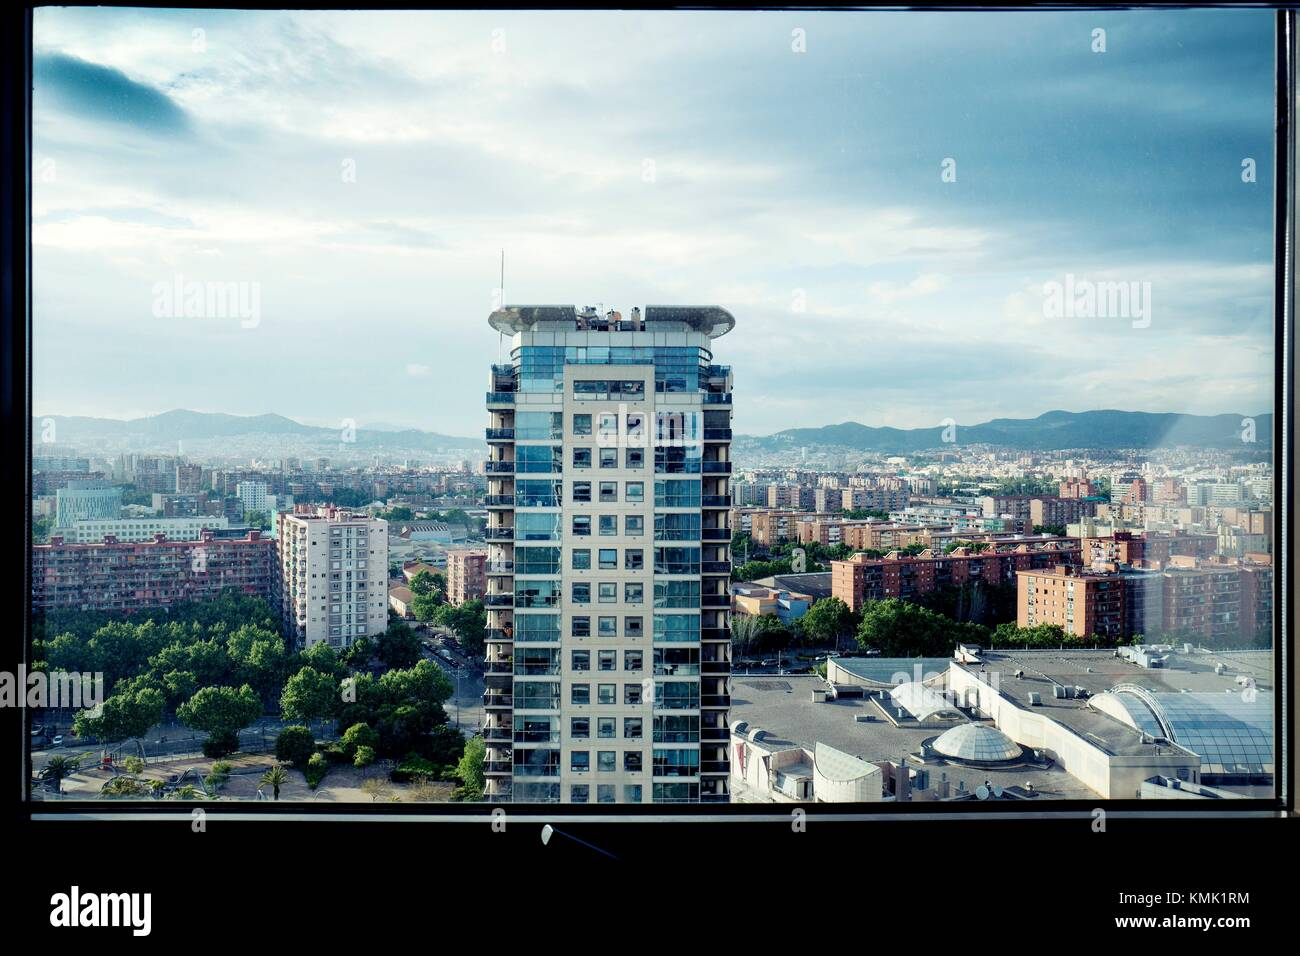 Evening view of residential tower from window. Diagonal Mar, Barcelona, Catalonia, Spain Stock Photo